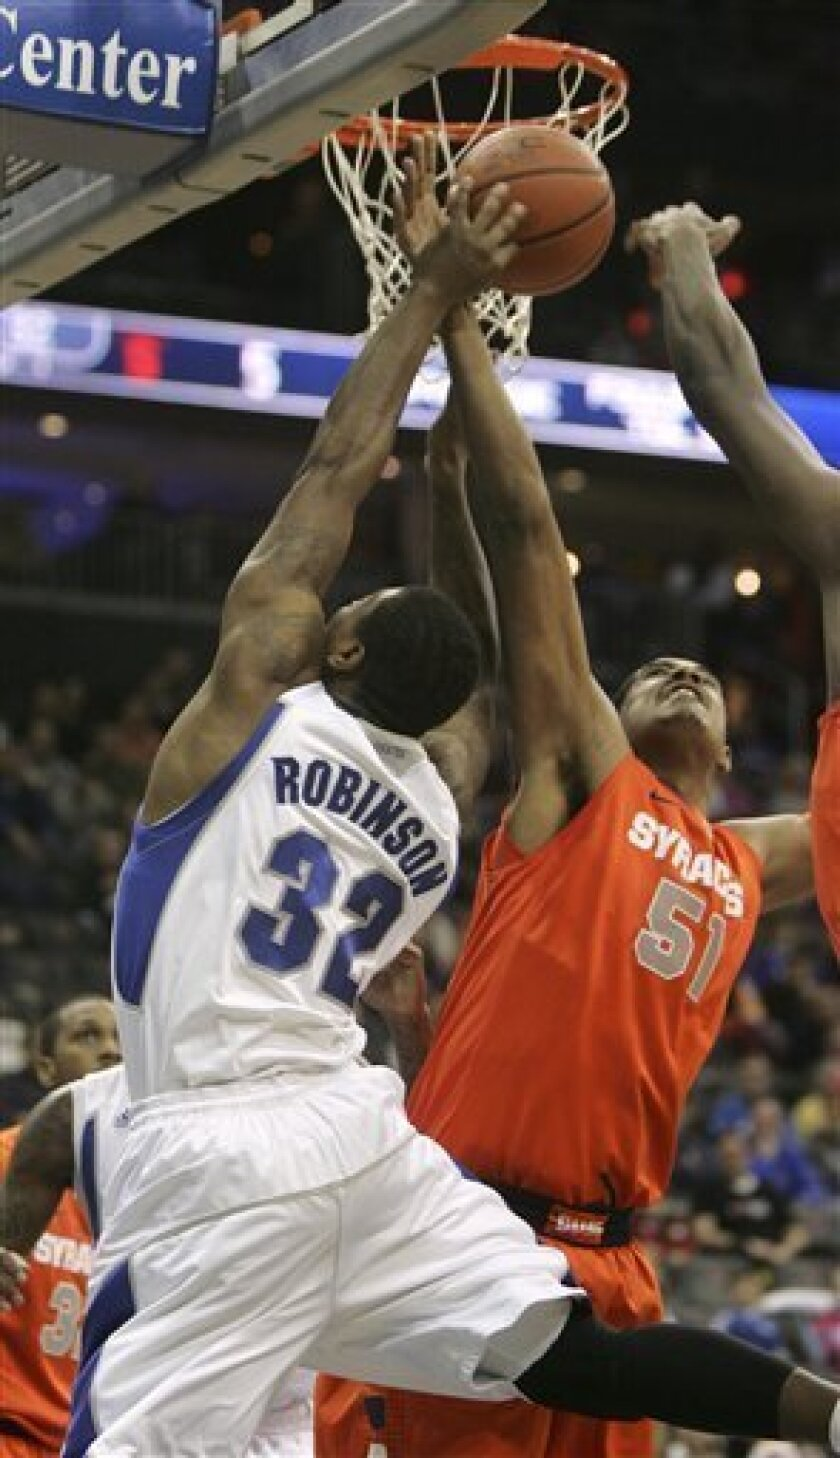 Seton Hall's Jeff Robinson (32) attempts a shot as Syracuse's Fab Melo (51) looks to block it during the first half of an NCAA college basketball game at the Prudential Center, Saturday, Jan. 8, 2011, in Newark, N.J. (AP Photo/Rich Schultz)